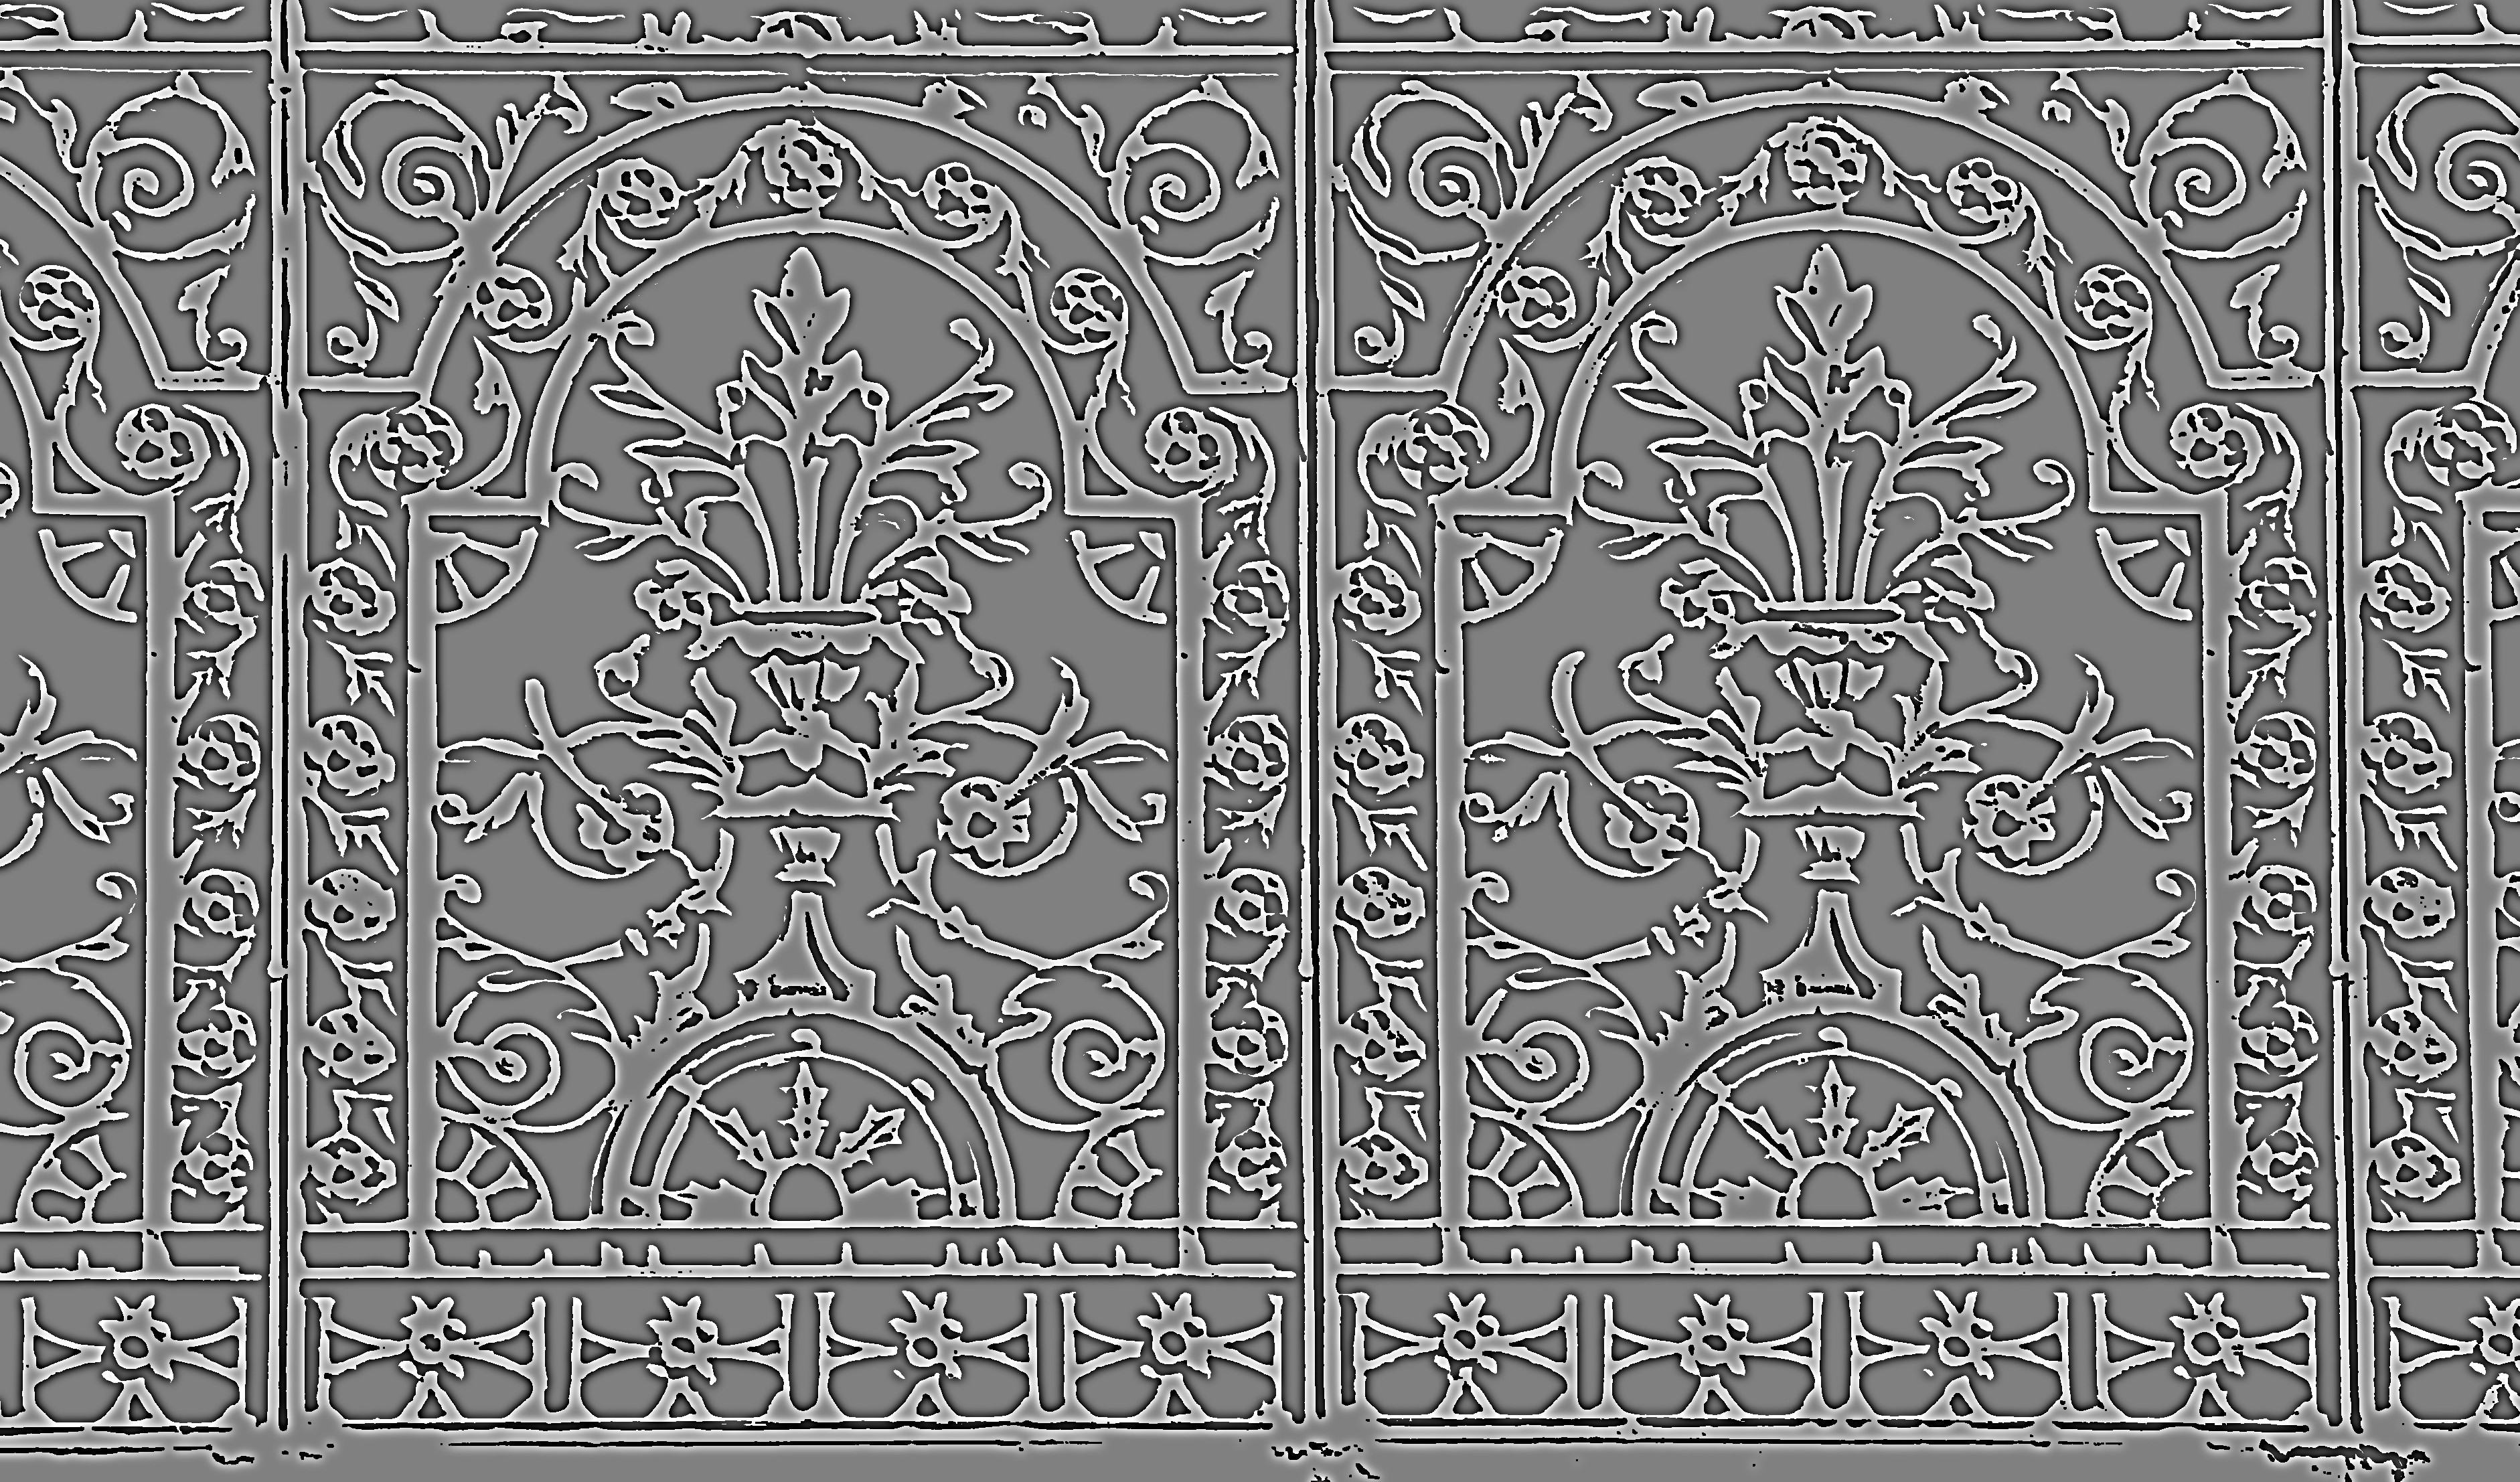 texture details of ironwork panel